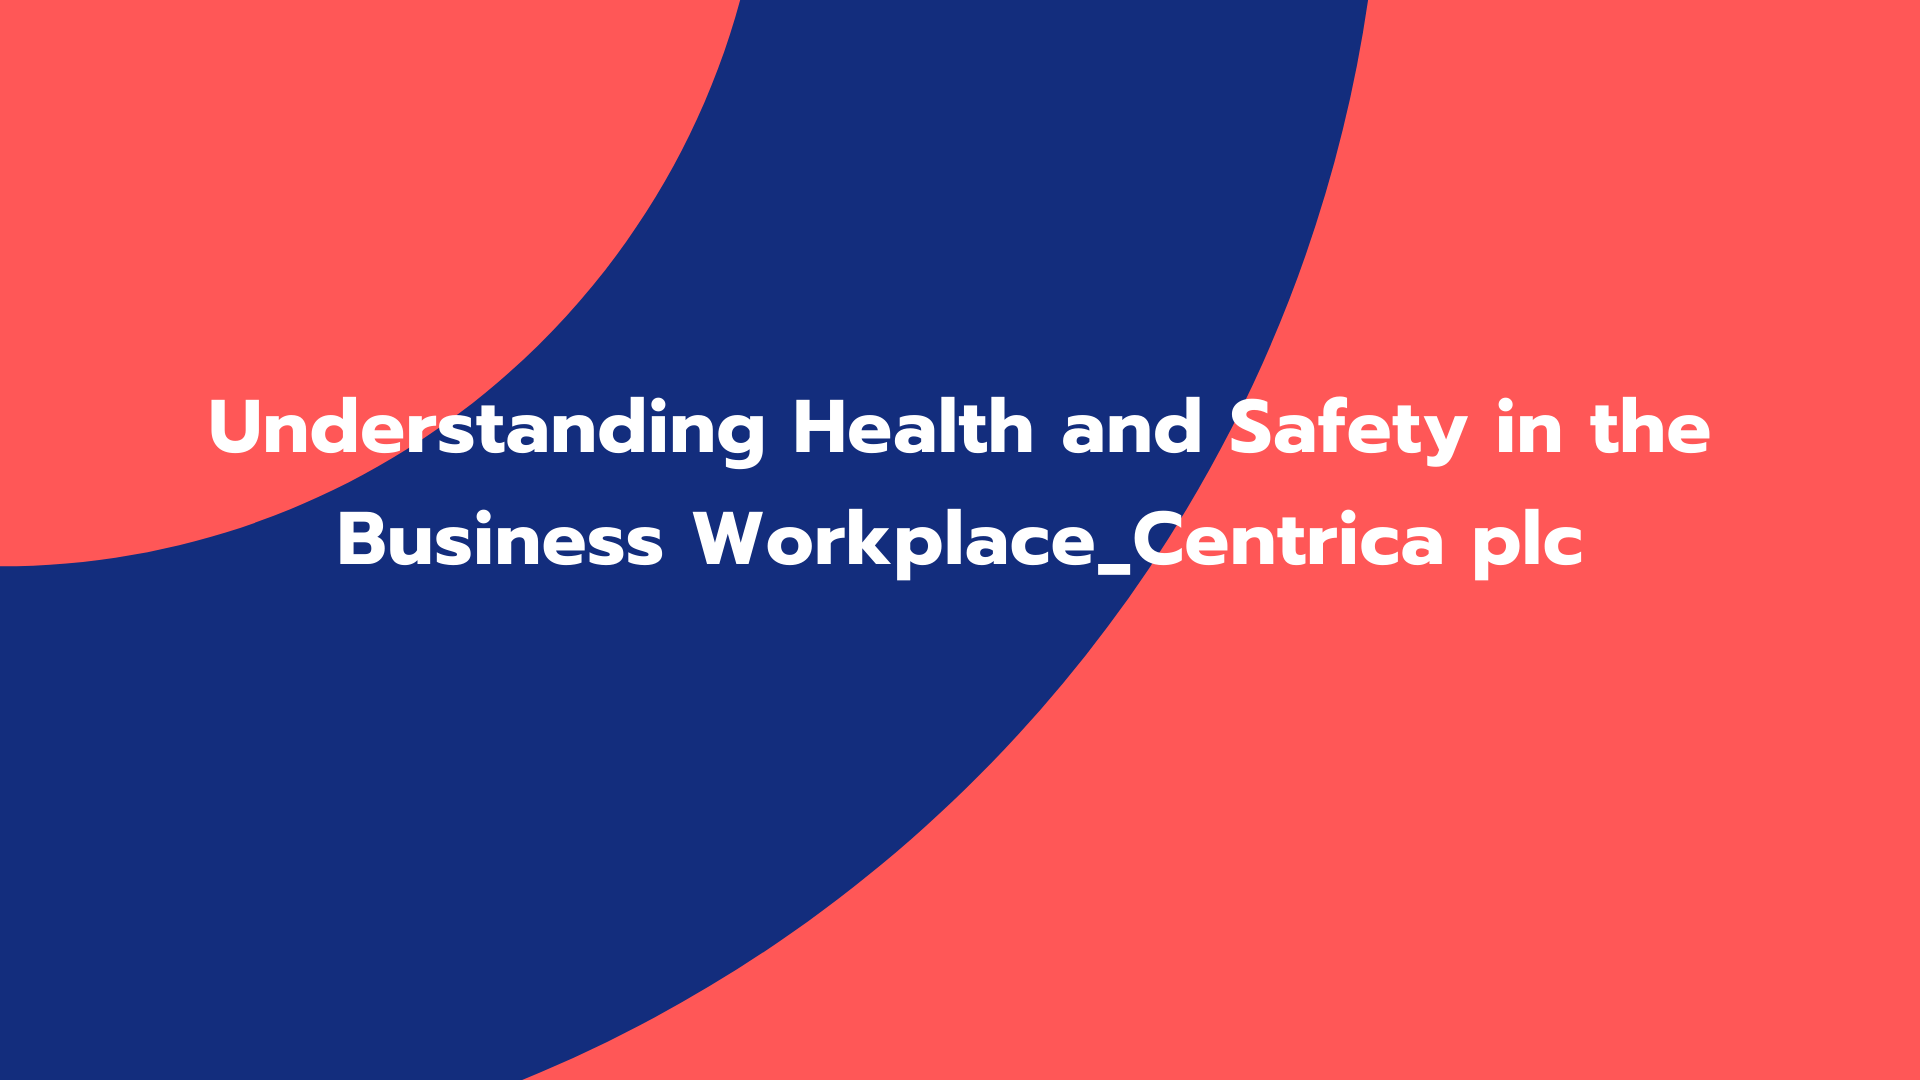 Understanding Health and Safety in the Business Workplace_Centrica plc